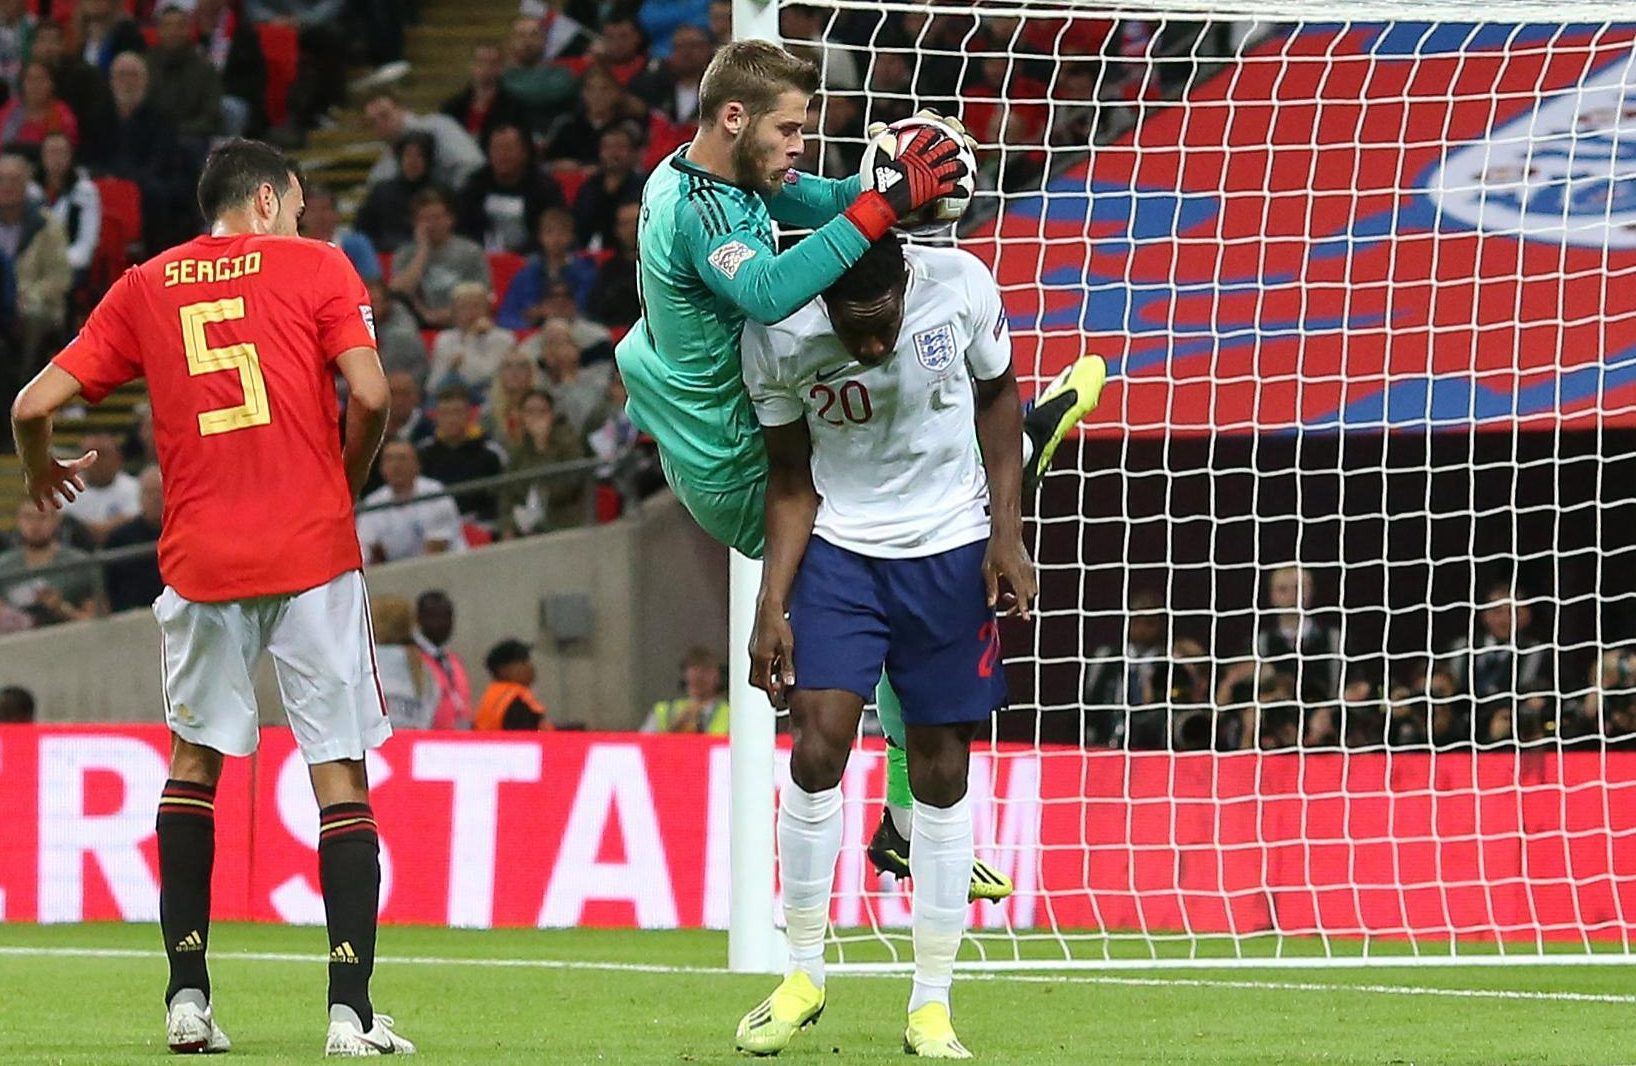 De Gea fell on to Welbeck and dropped the ball, giving him the chance to tap home - but this was deemed a foul